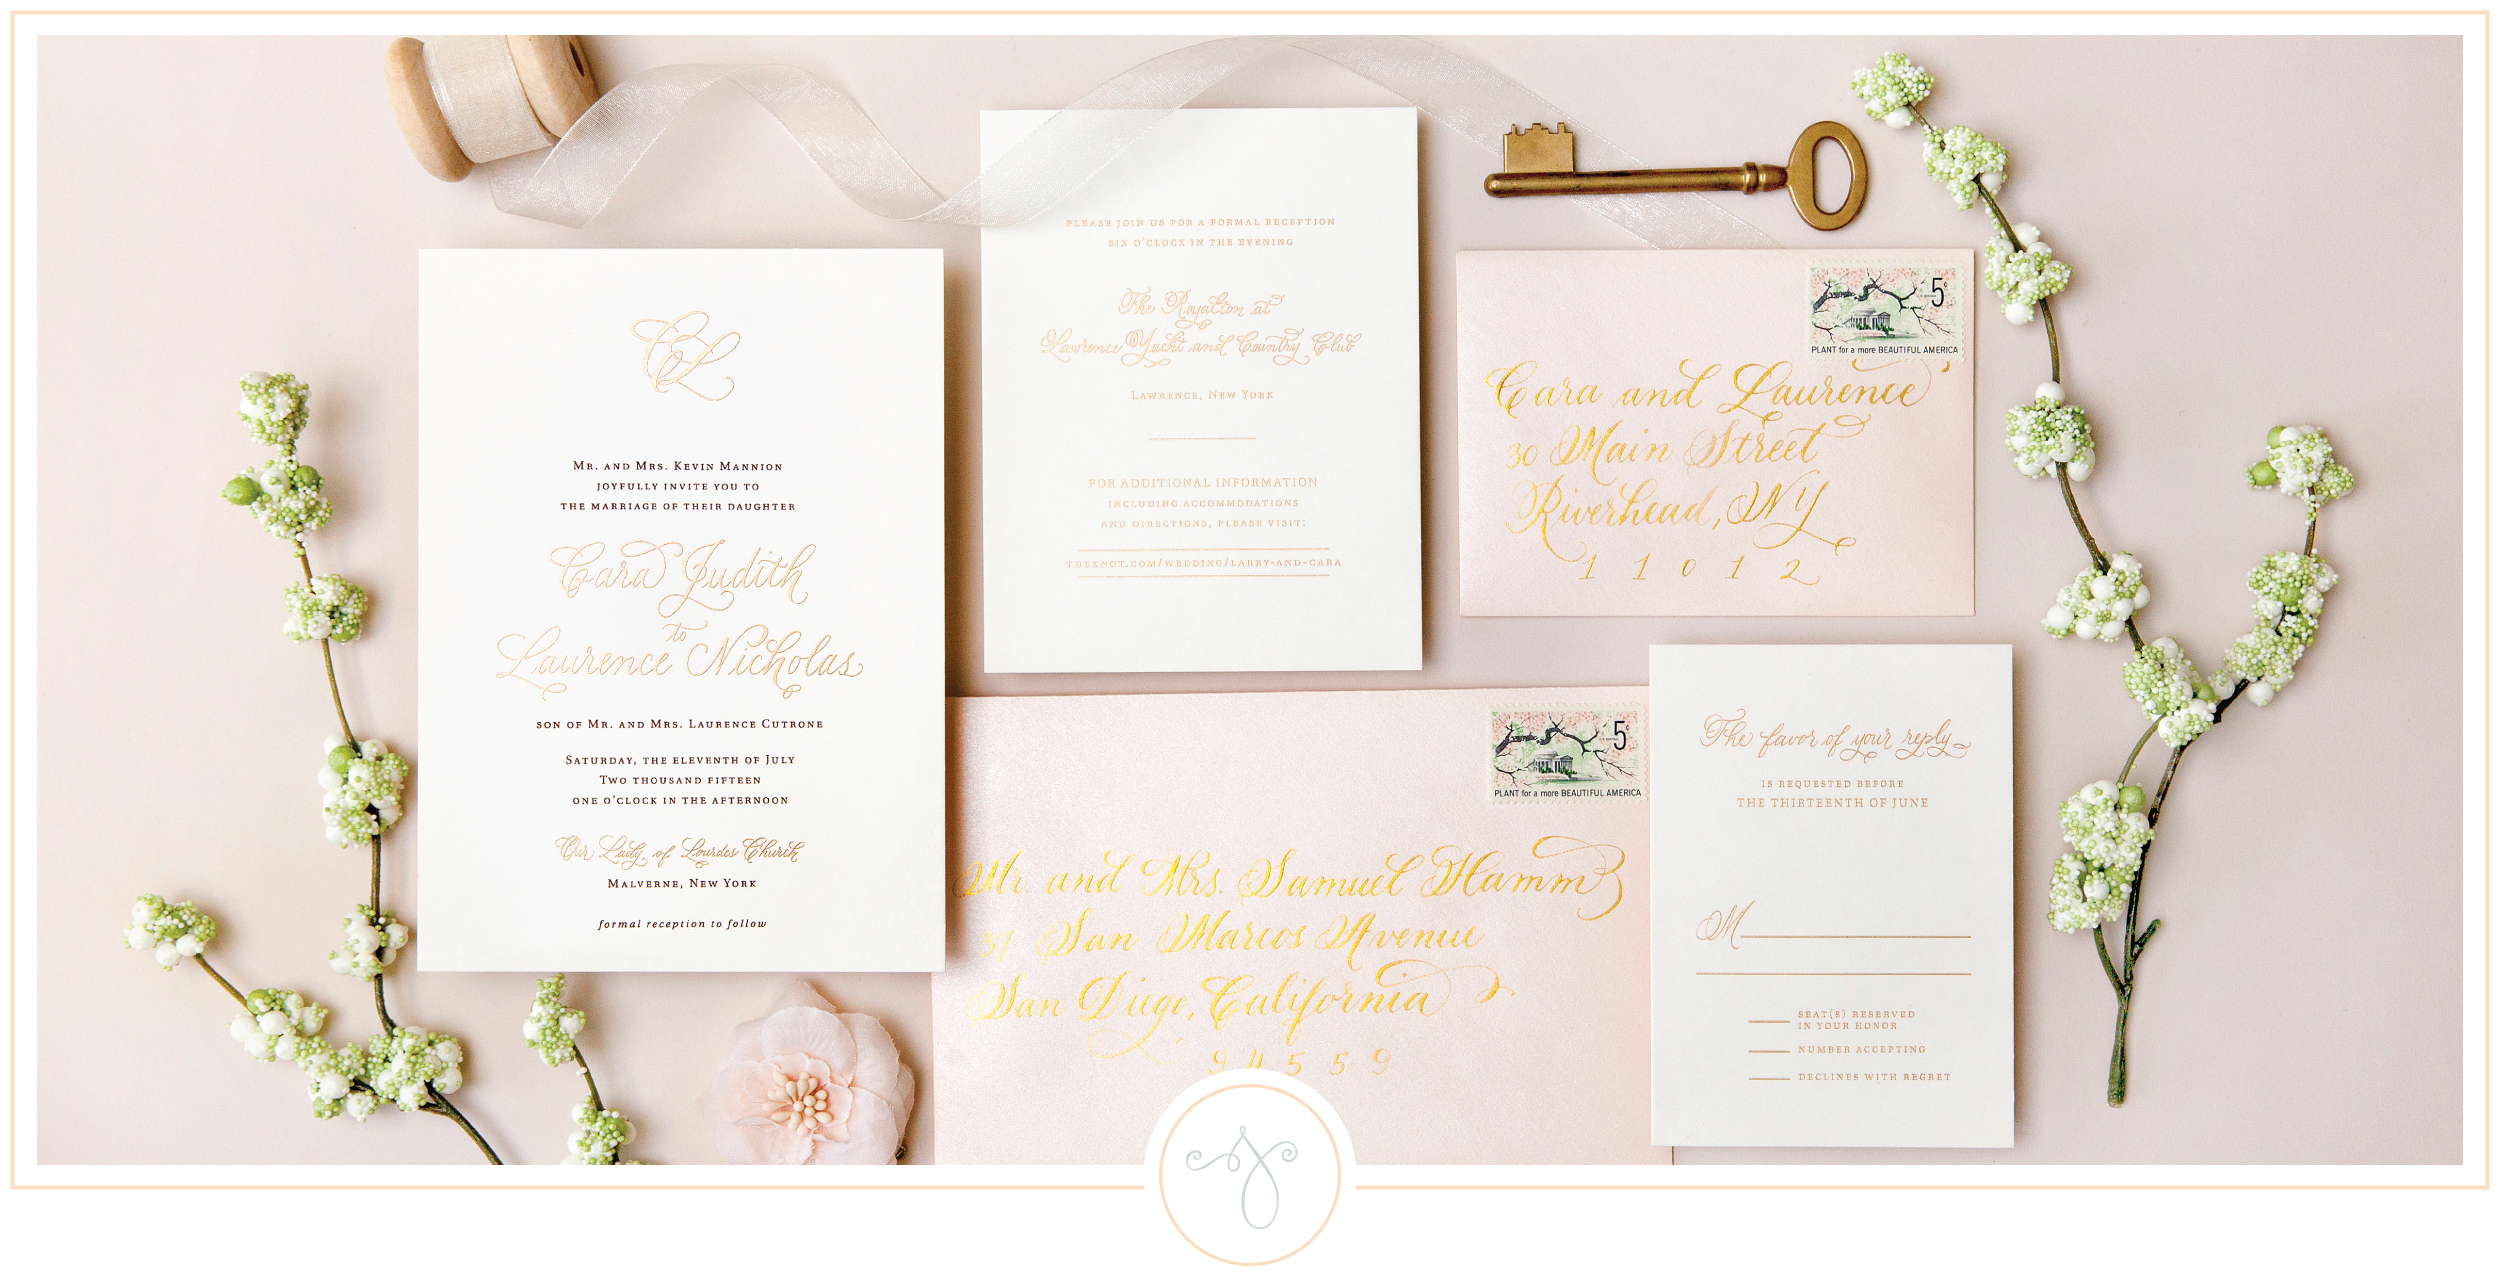 Sincerely-Jackie-Long-Island-Custom-Wedding-Invitations-1.jpg